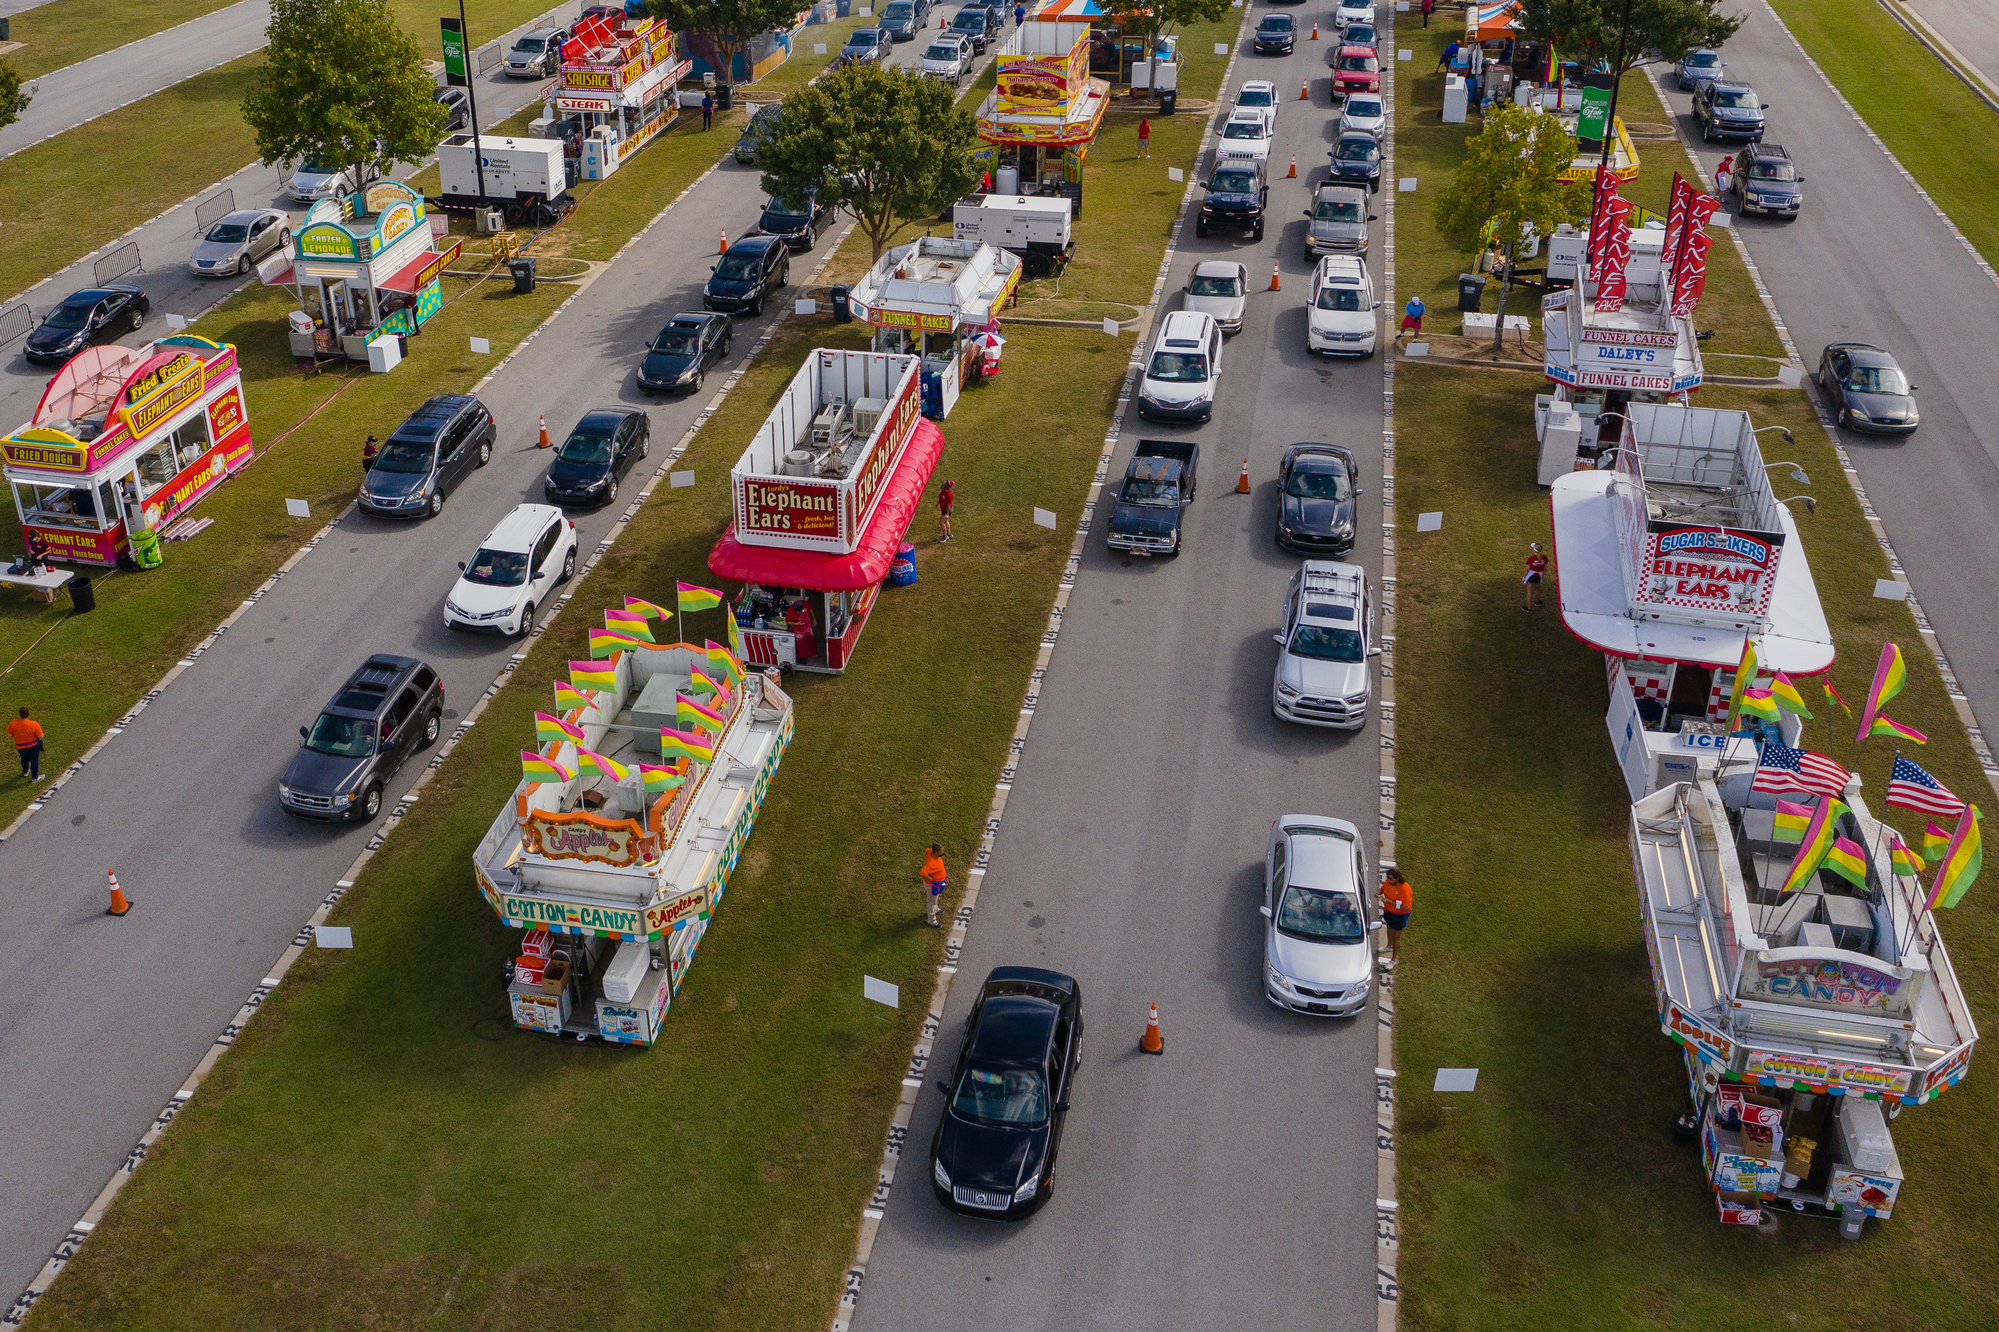 Vehicles drive through the food options at the state fair this week.